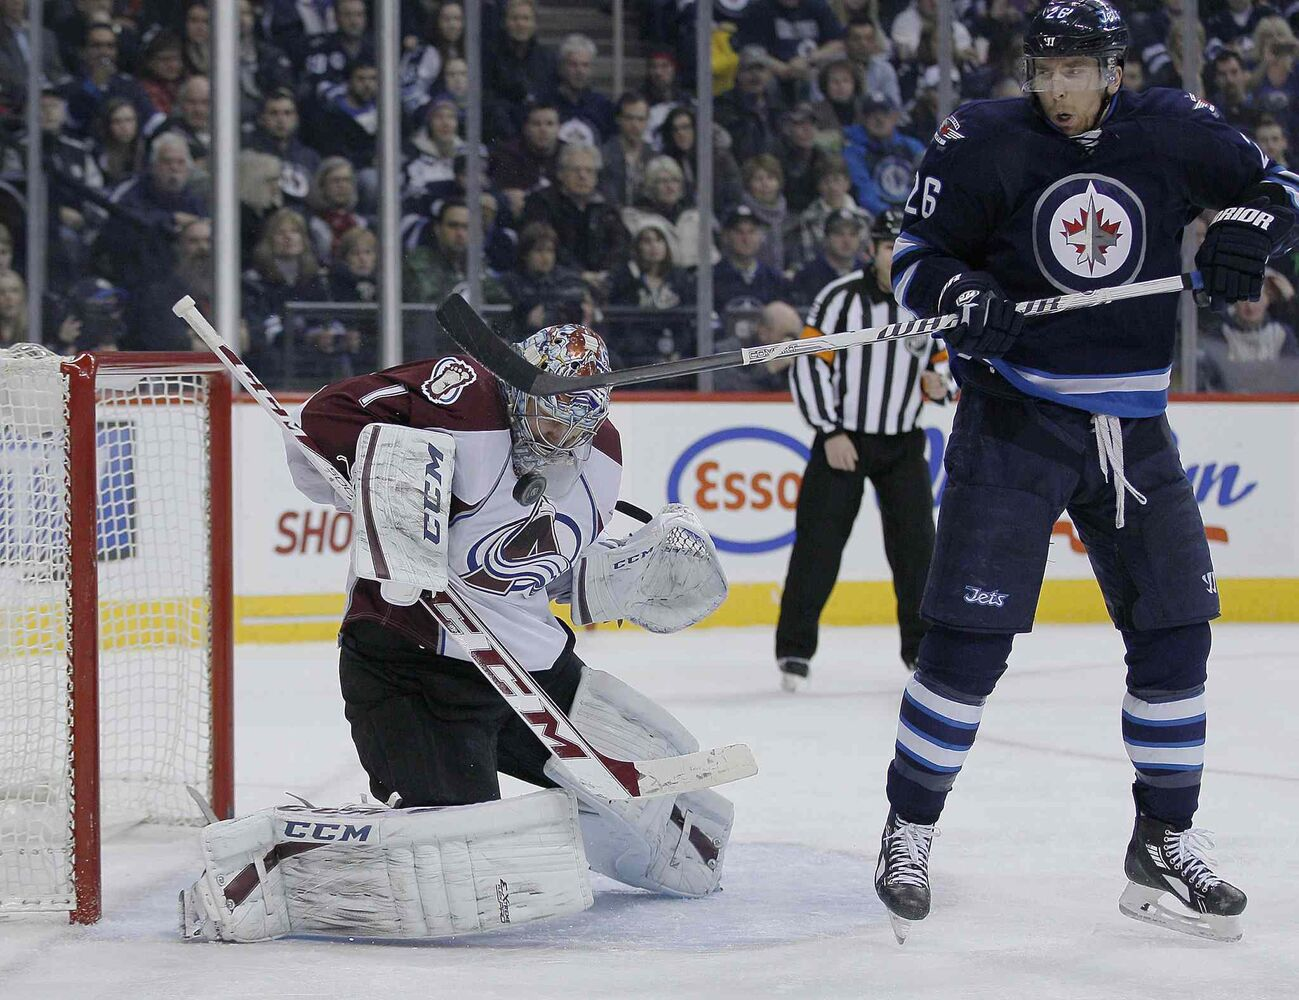 Blake Wheeler (right) tries a similar deflection in front of Varlamov during the second period. (JOHN WOODS / THE CANADIAN PRESS)